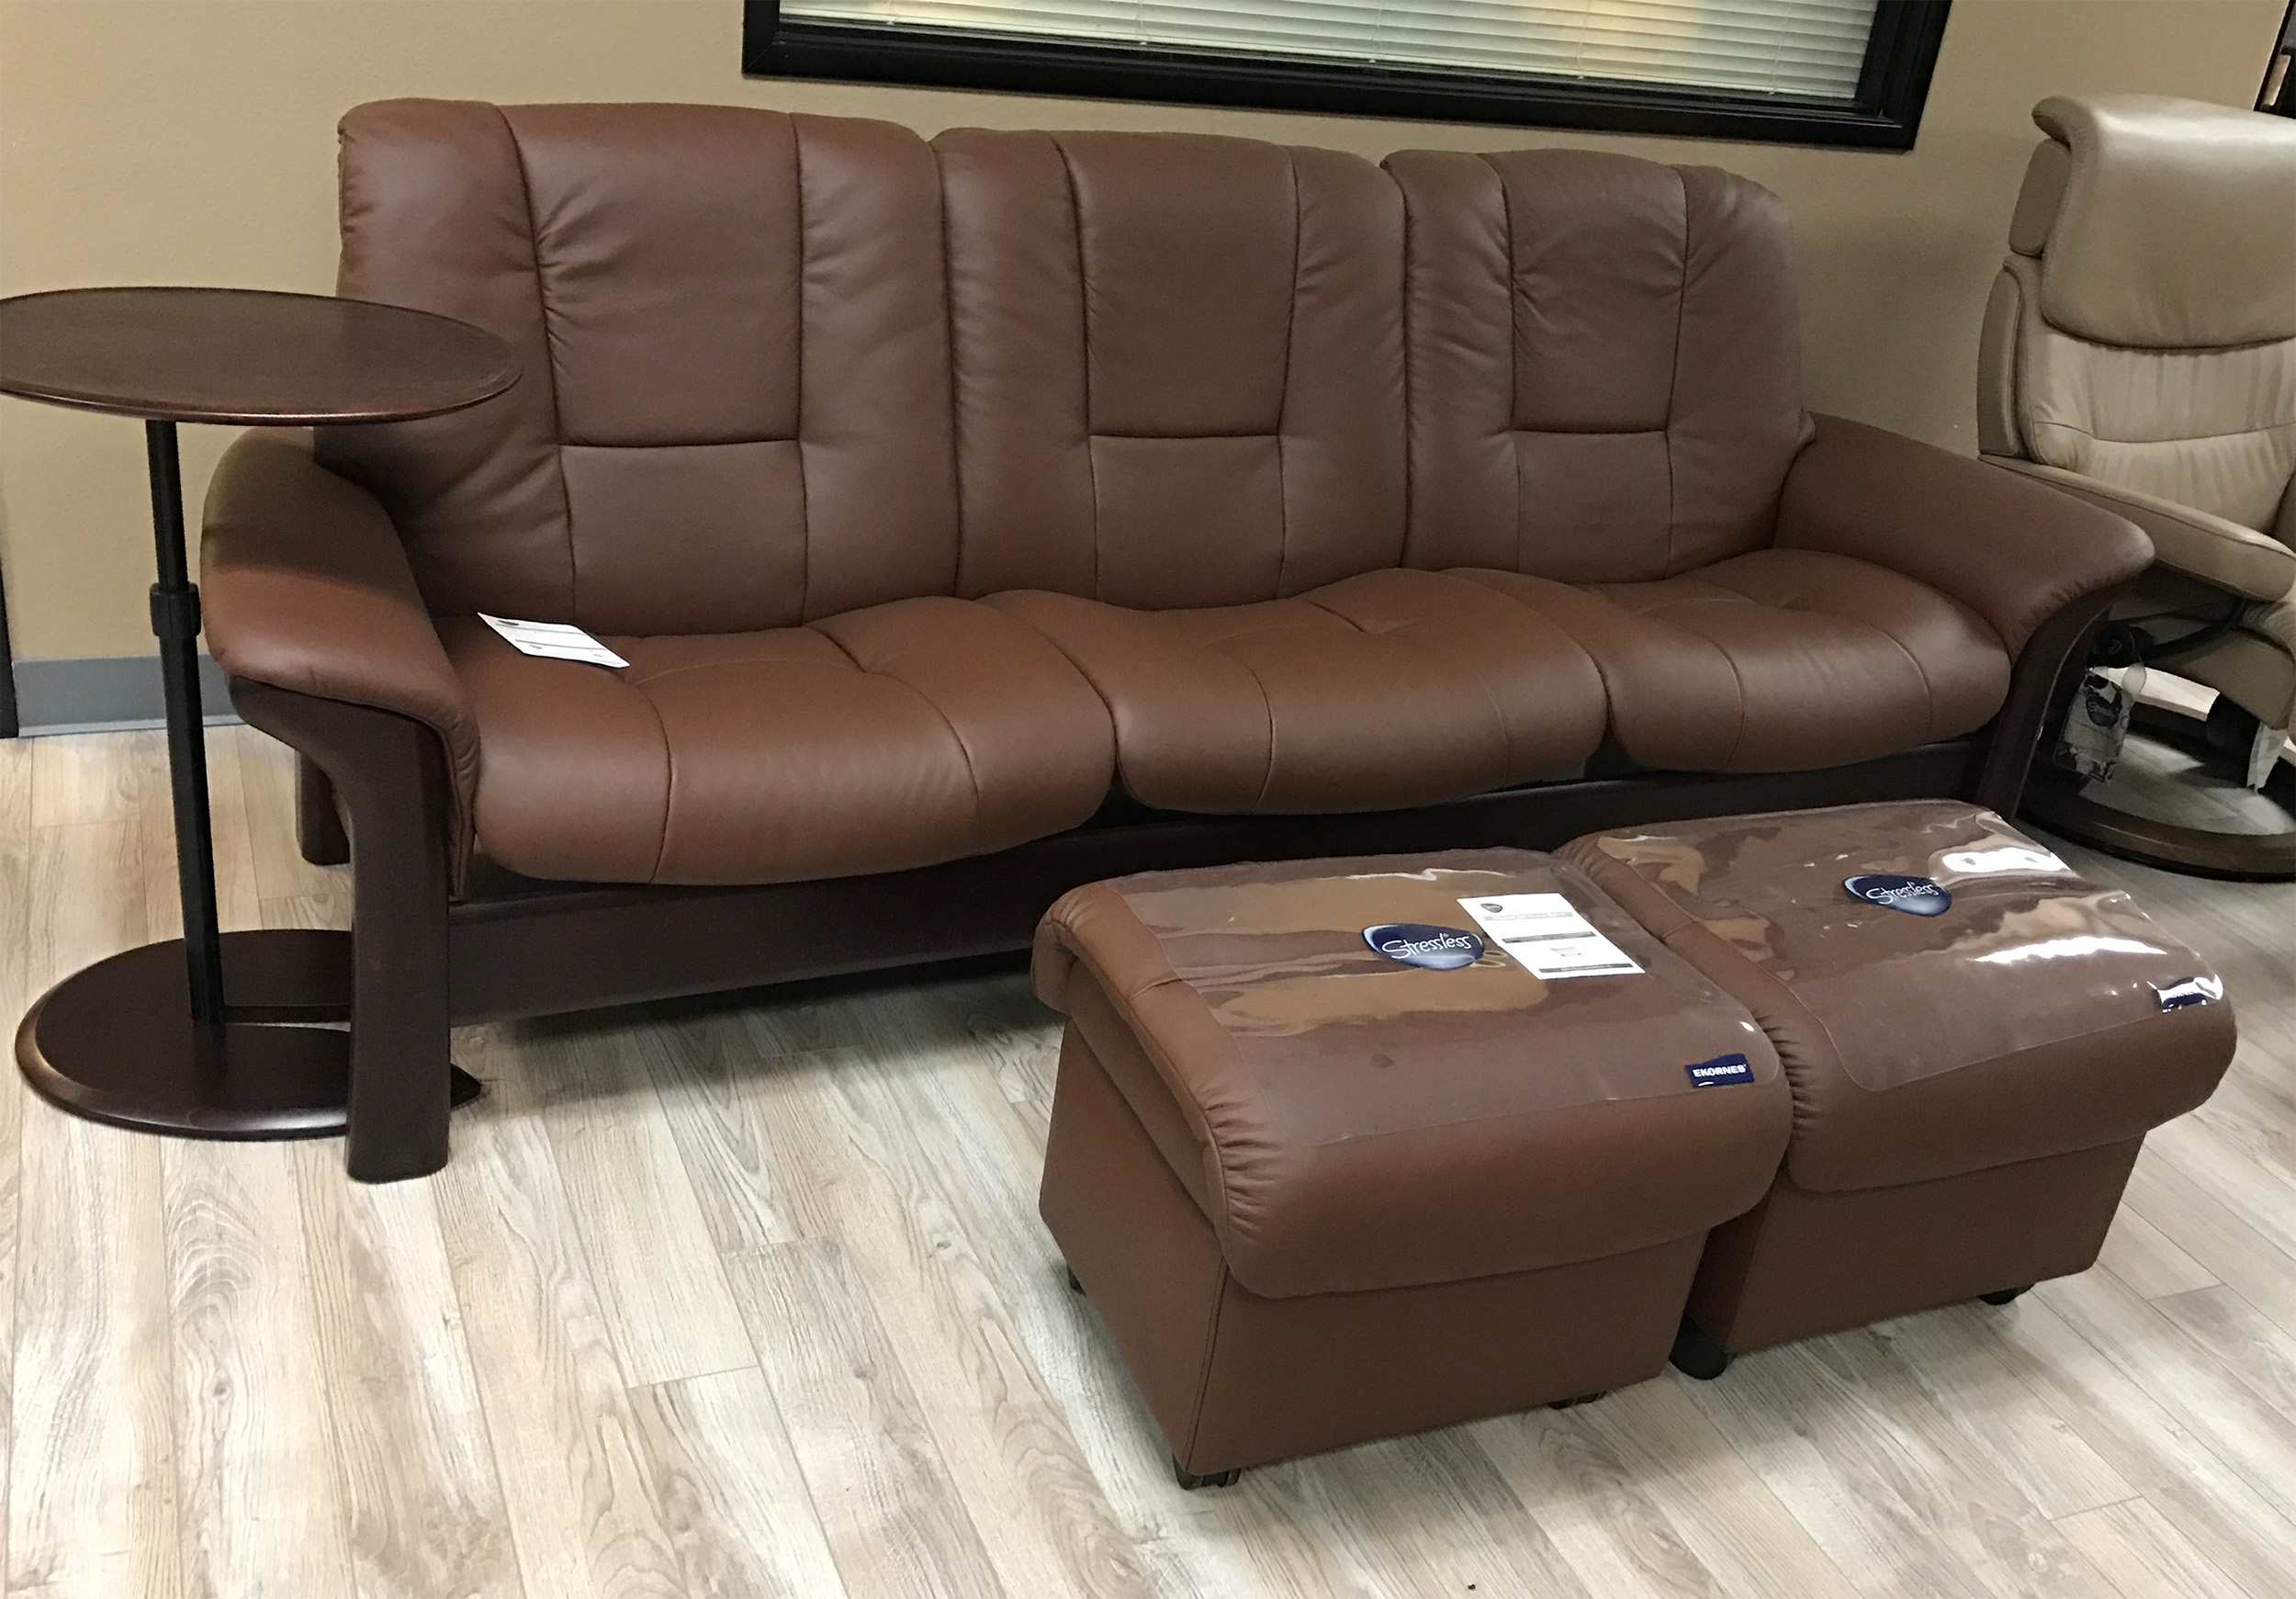 Ekornes Stressless Buckingham Sofa Stressless Buckingham 3 Seat Low Back Sofa Paloma Brown